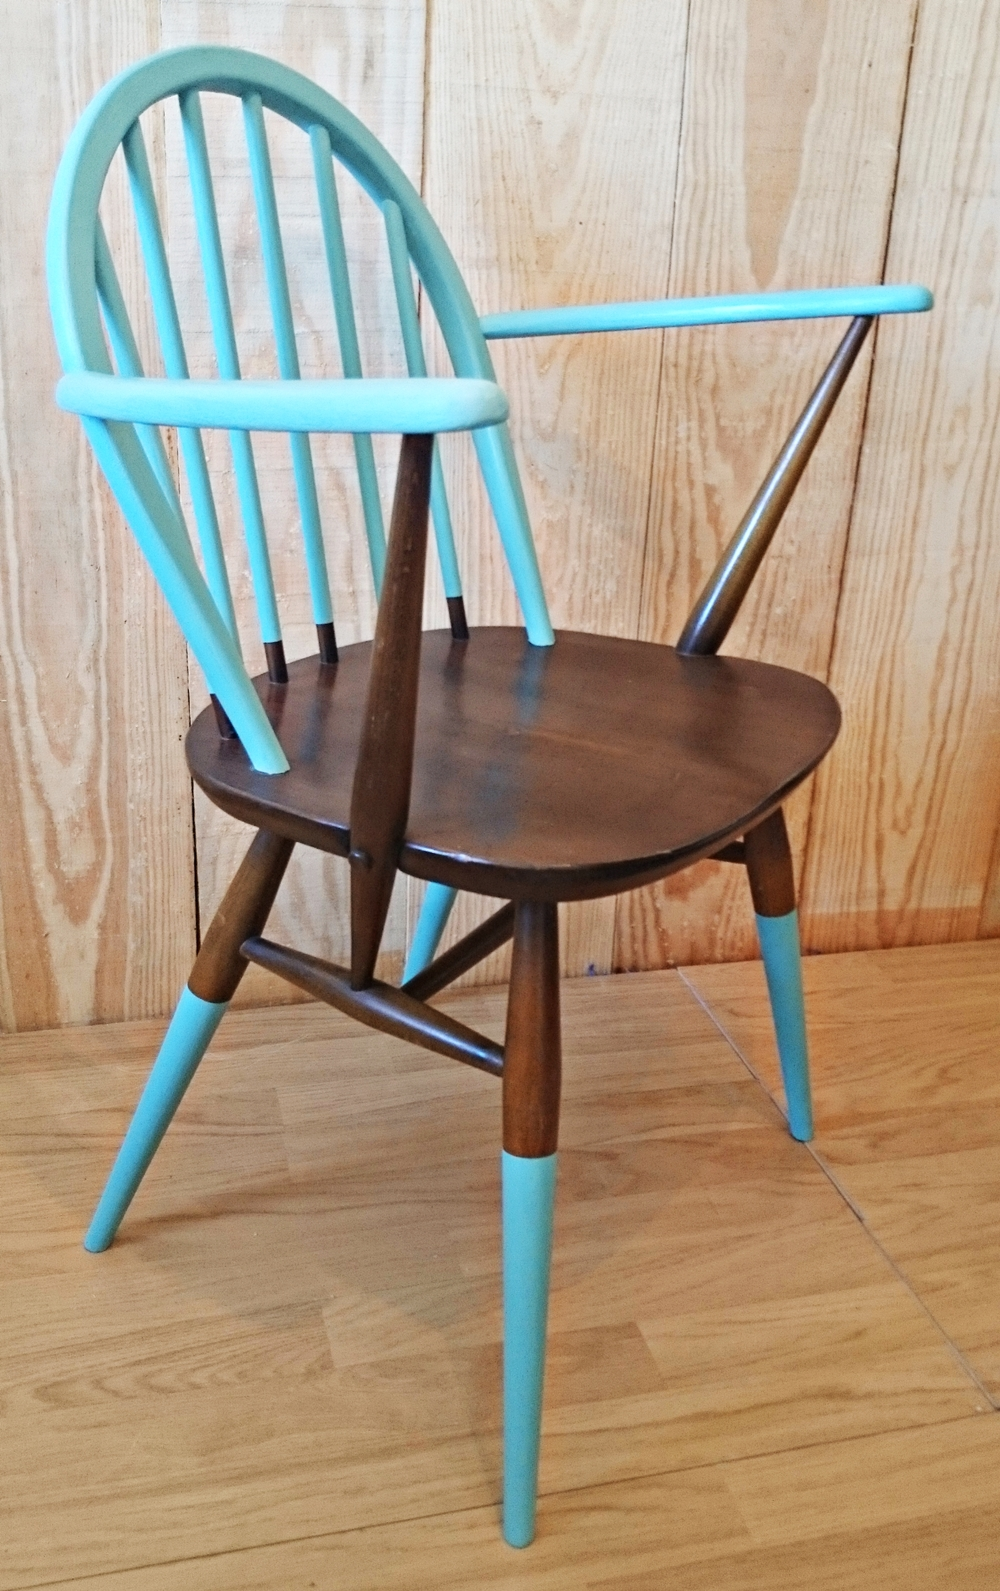 Silla vintage ercol en turquqesa y madera bohemian and chic for Sillas vintage madera